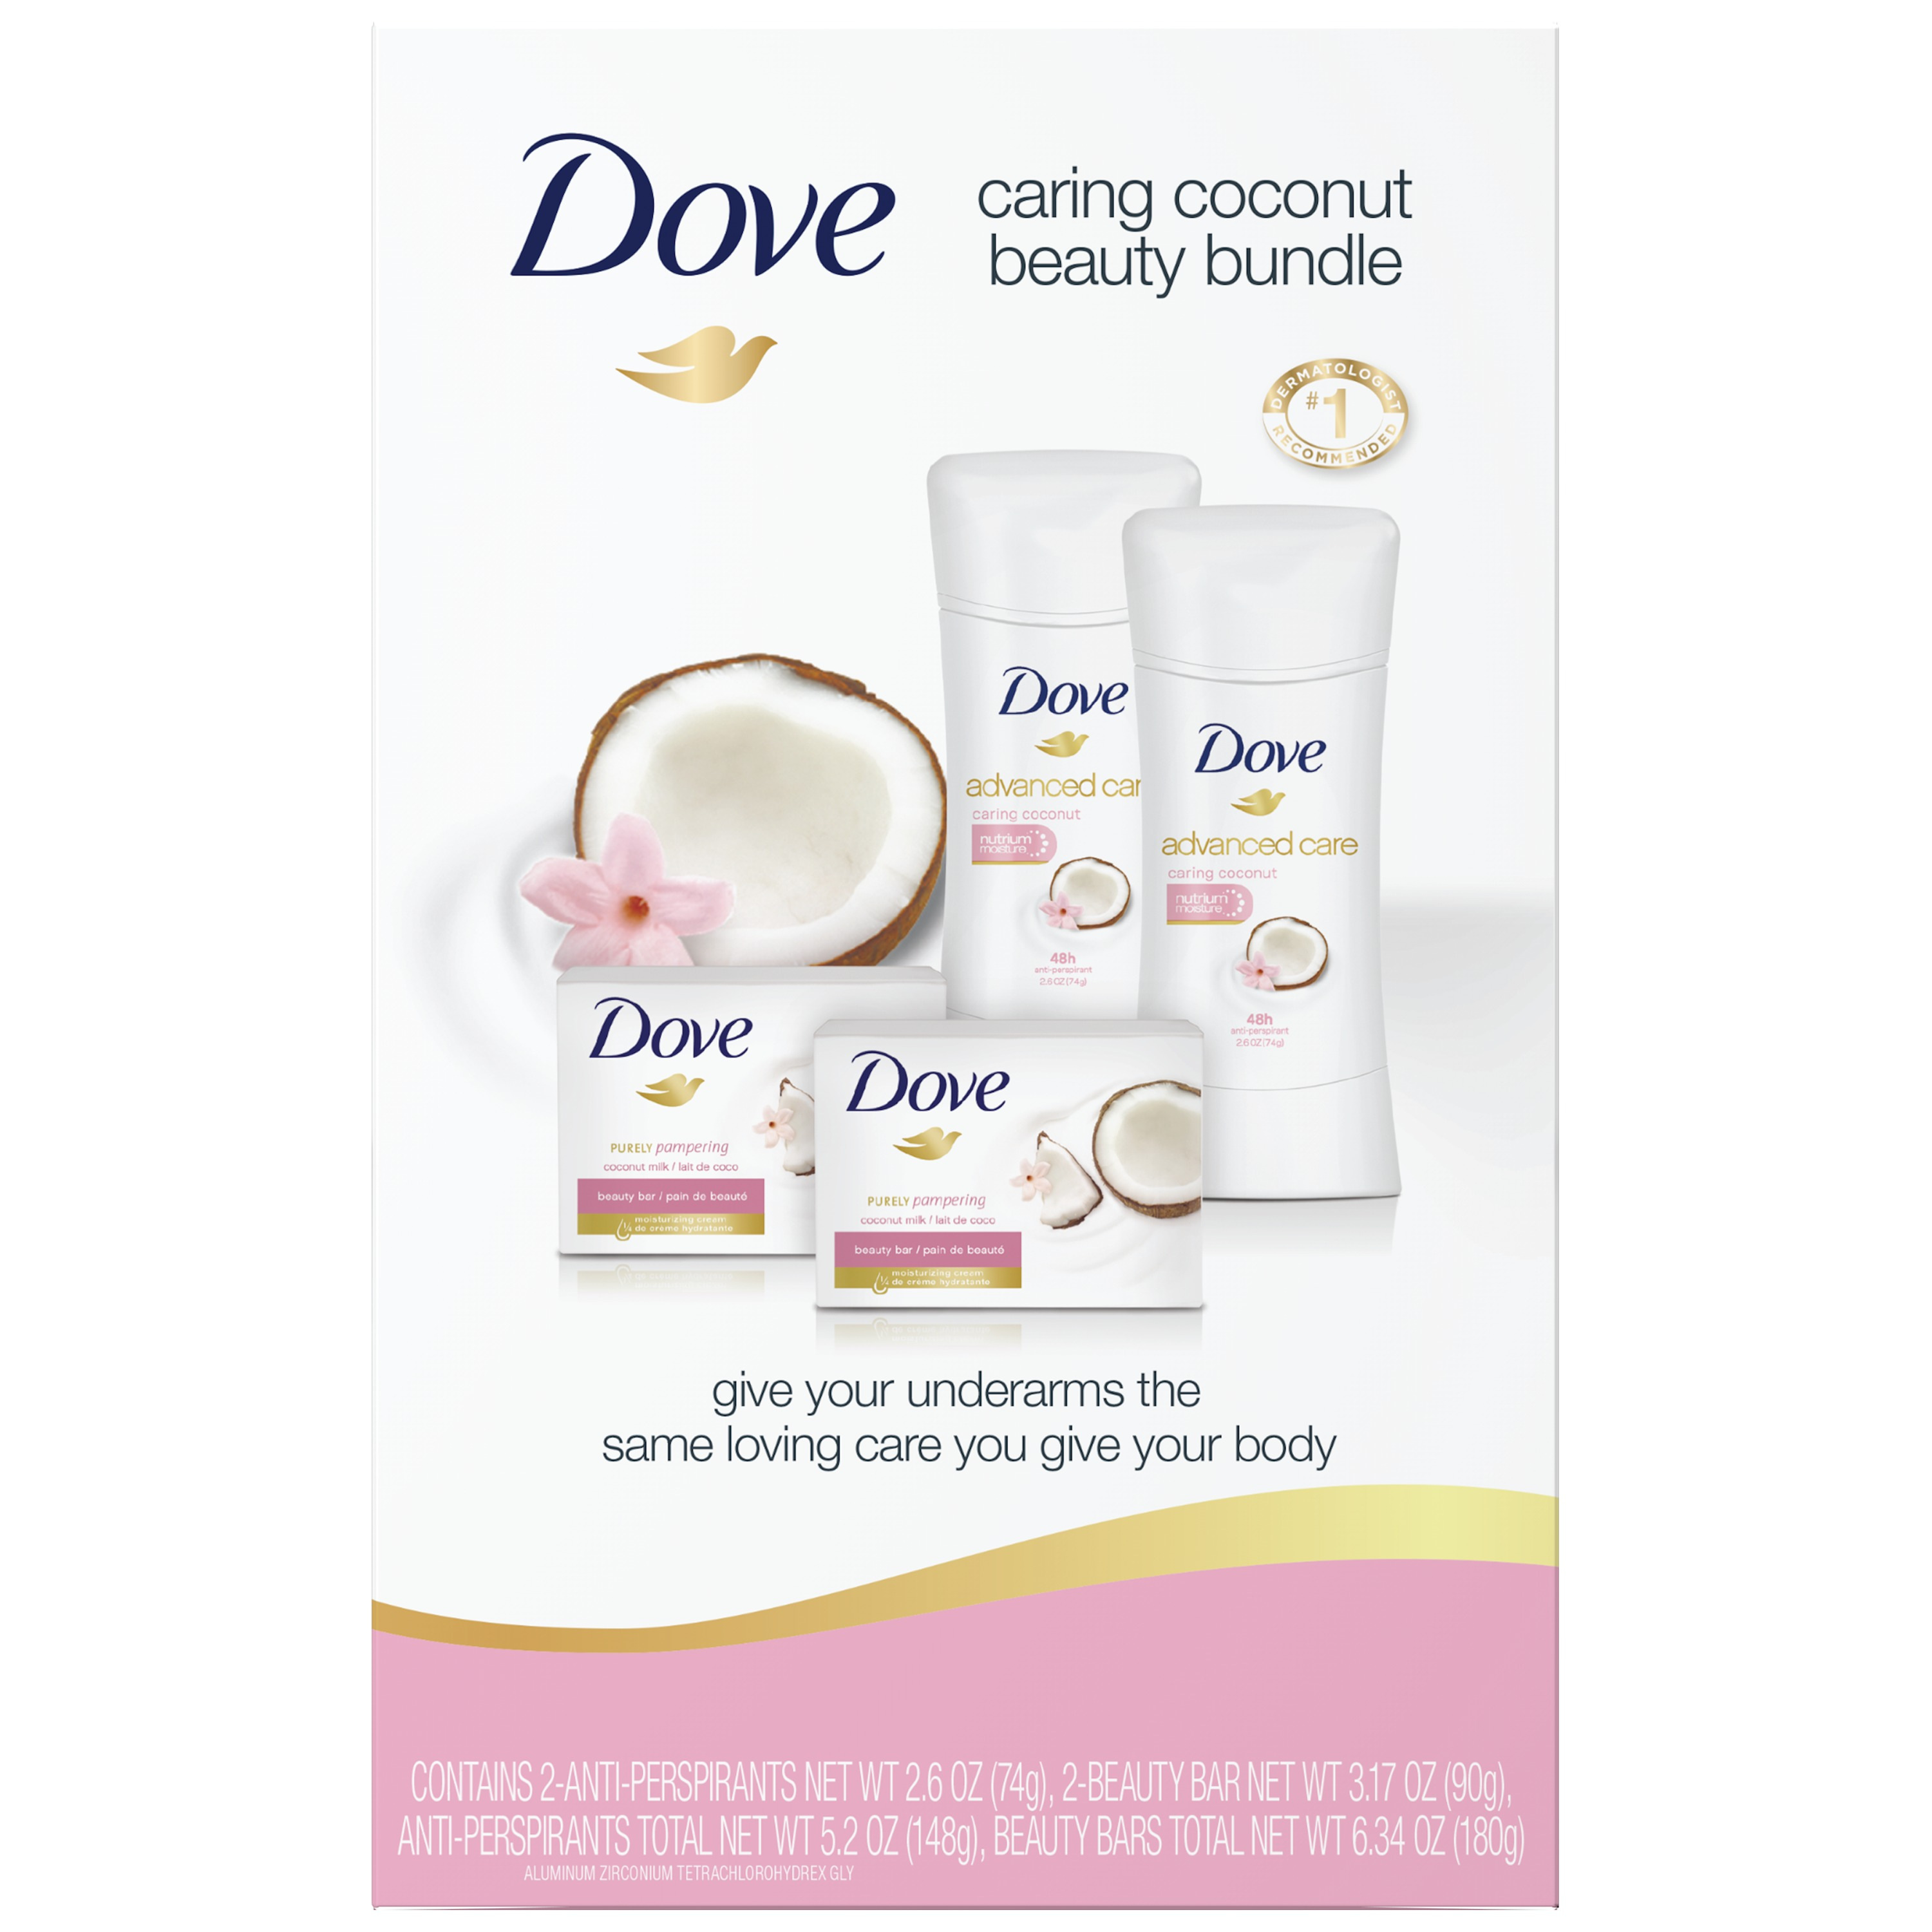 Dove 4-Pc Caring Coconut Beauty Bundle (Beauty Bar x 2, Deo x 2)